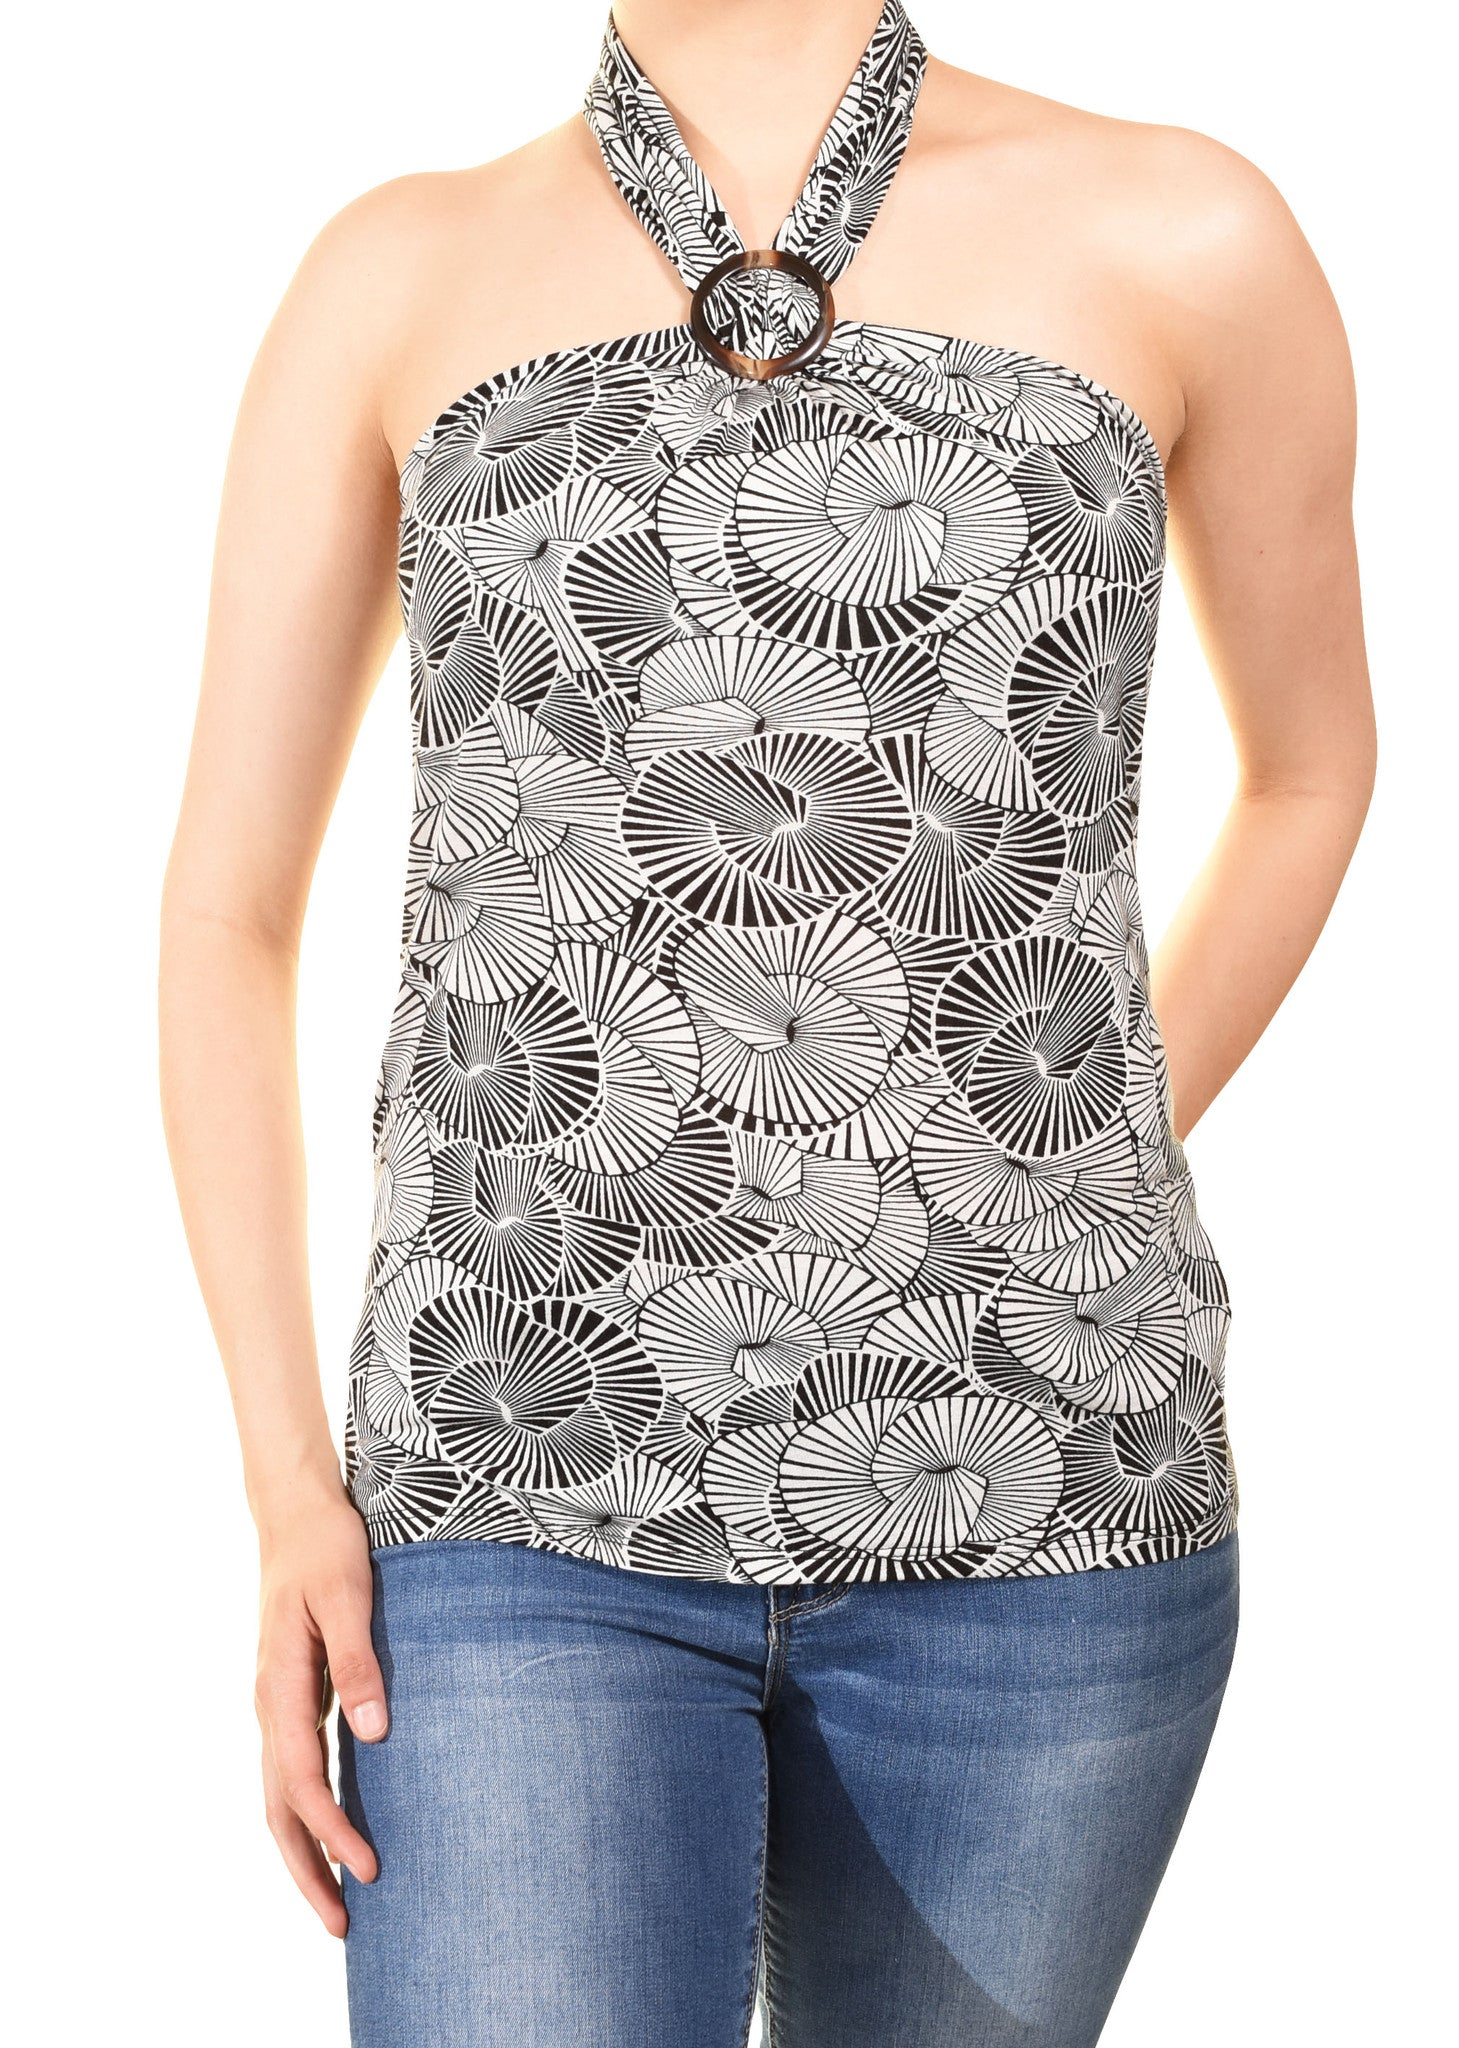 Banana Republic O Ring Halter Shirt (Black White Floral),Shirts,Banana Republic - Discount Divas